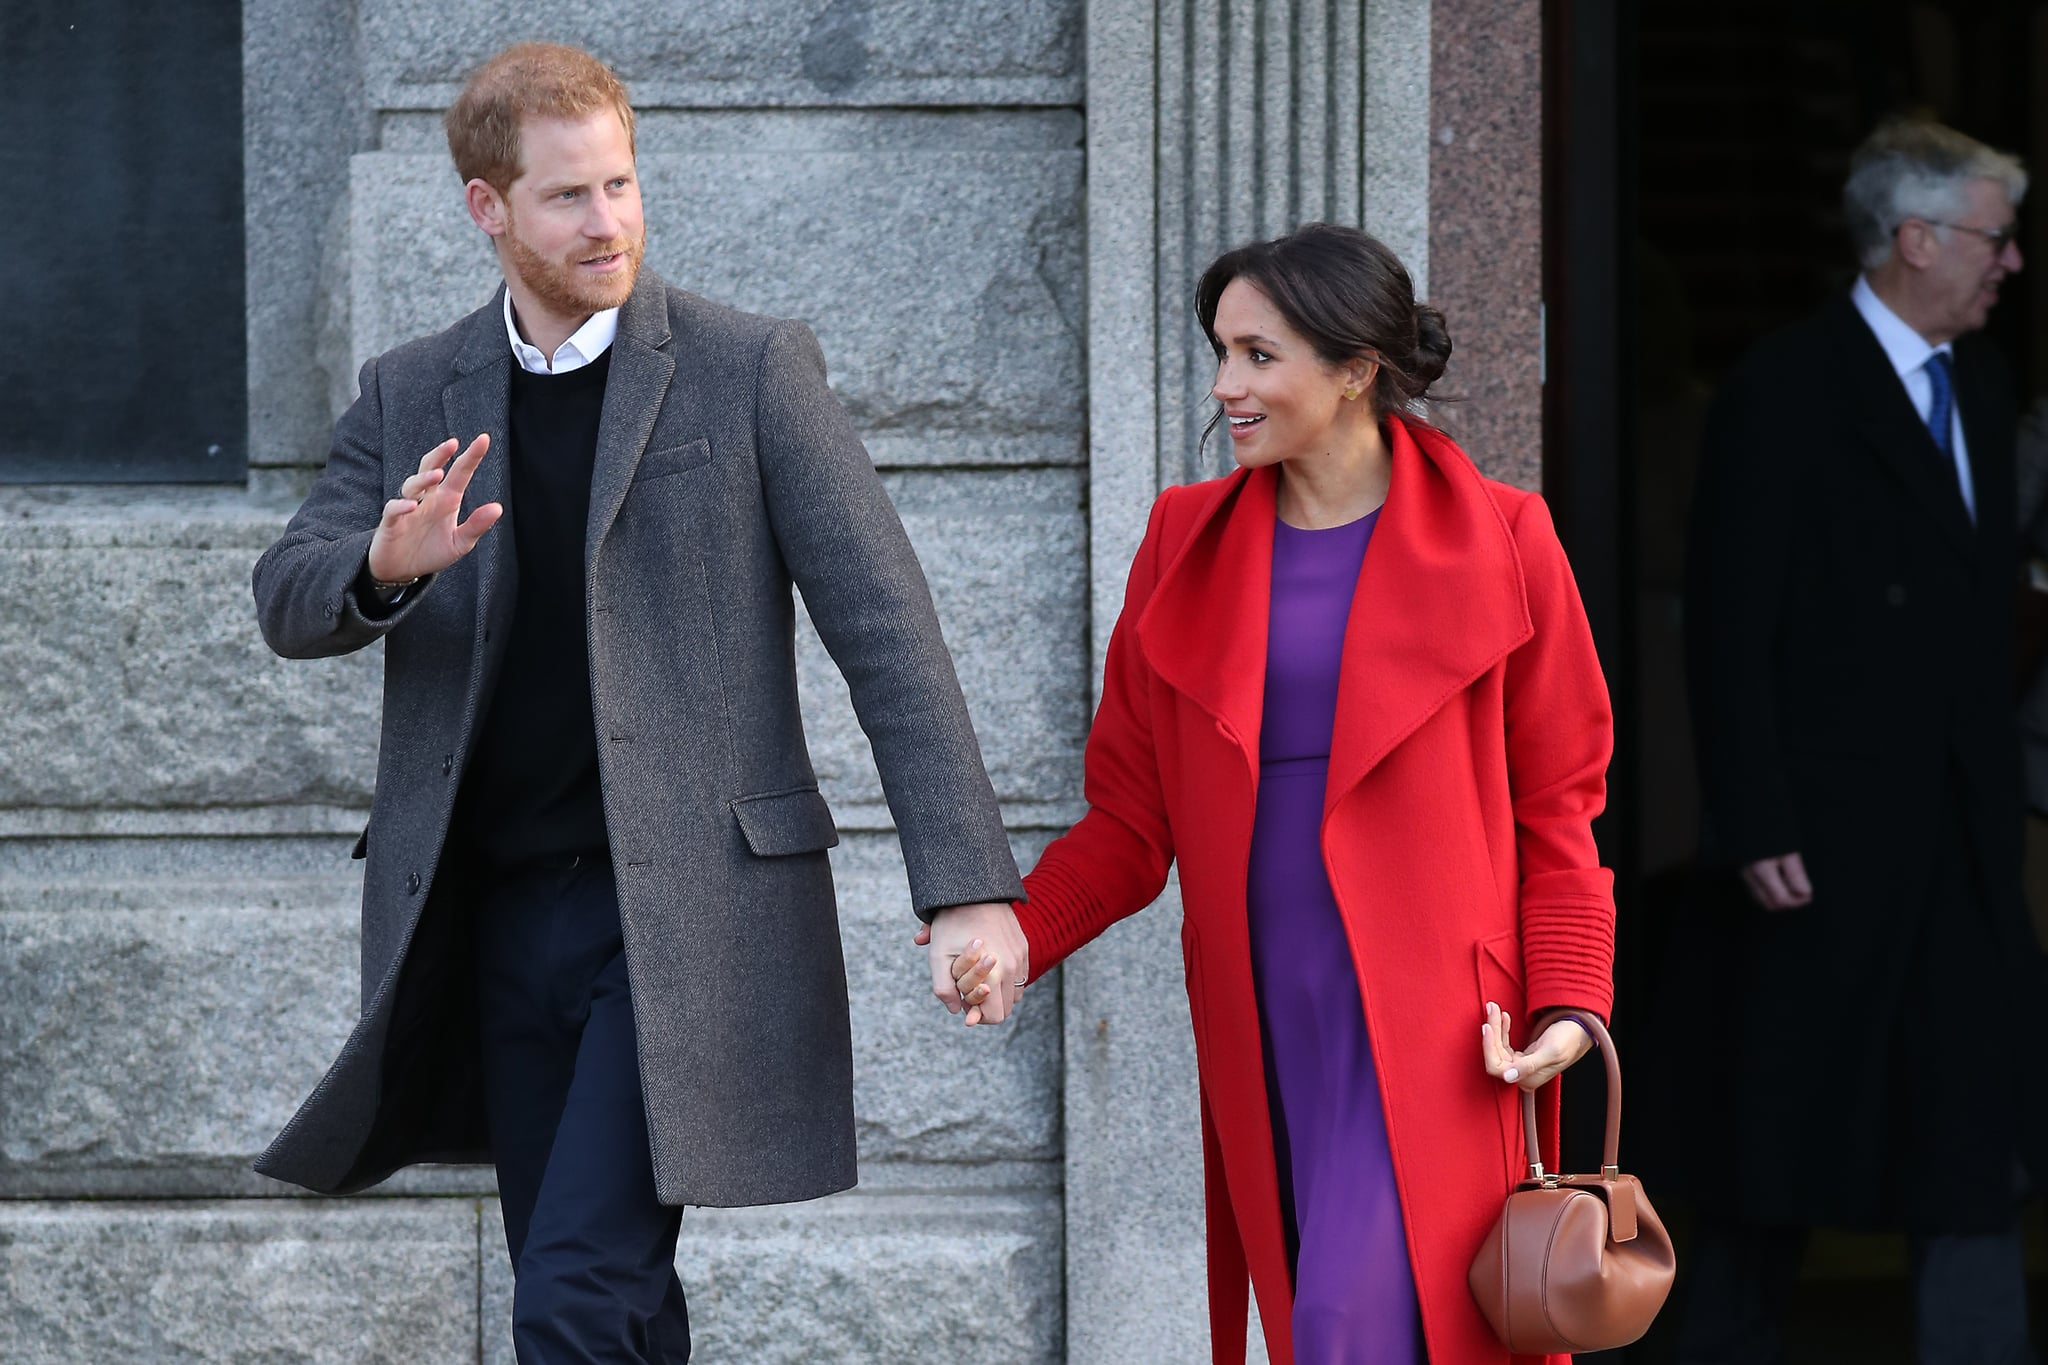 BIRKENHEAD, ENGLAND - JANUARY 14: Prince Harry, Duke of Sussex and Meghan, Duchess of Sussex visit Hamilton Square on January 14, 2019 in Birkenhead, United Kingdom. (Photo by Neil Mockford/GC Images)